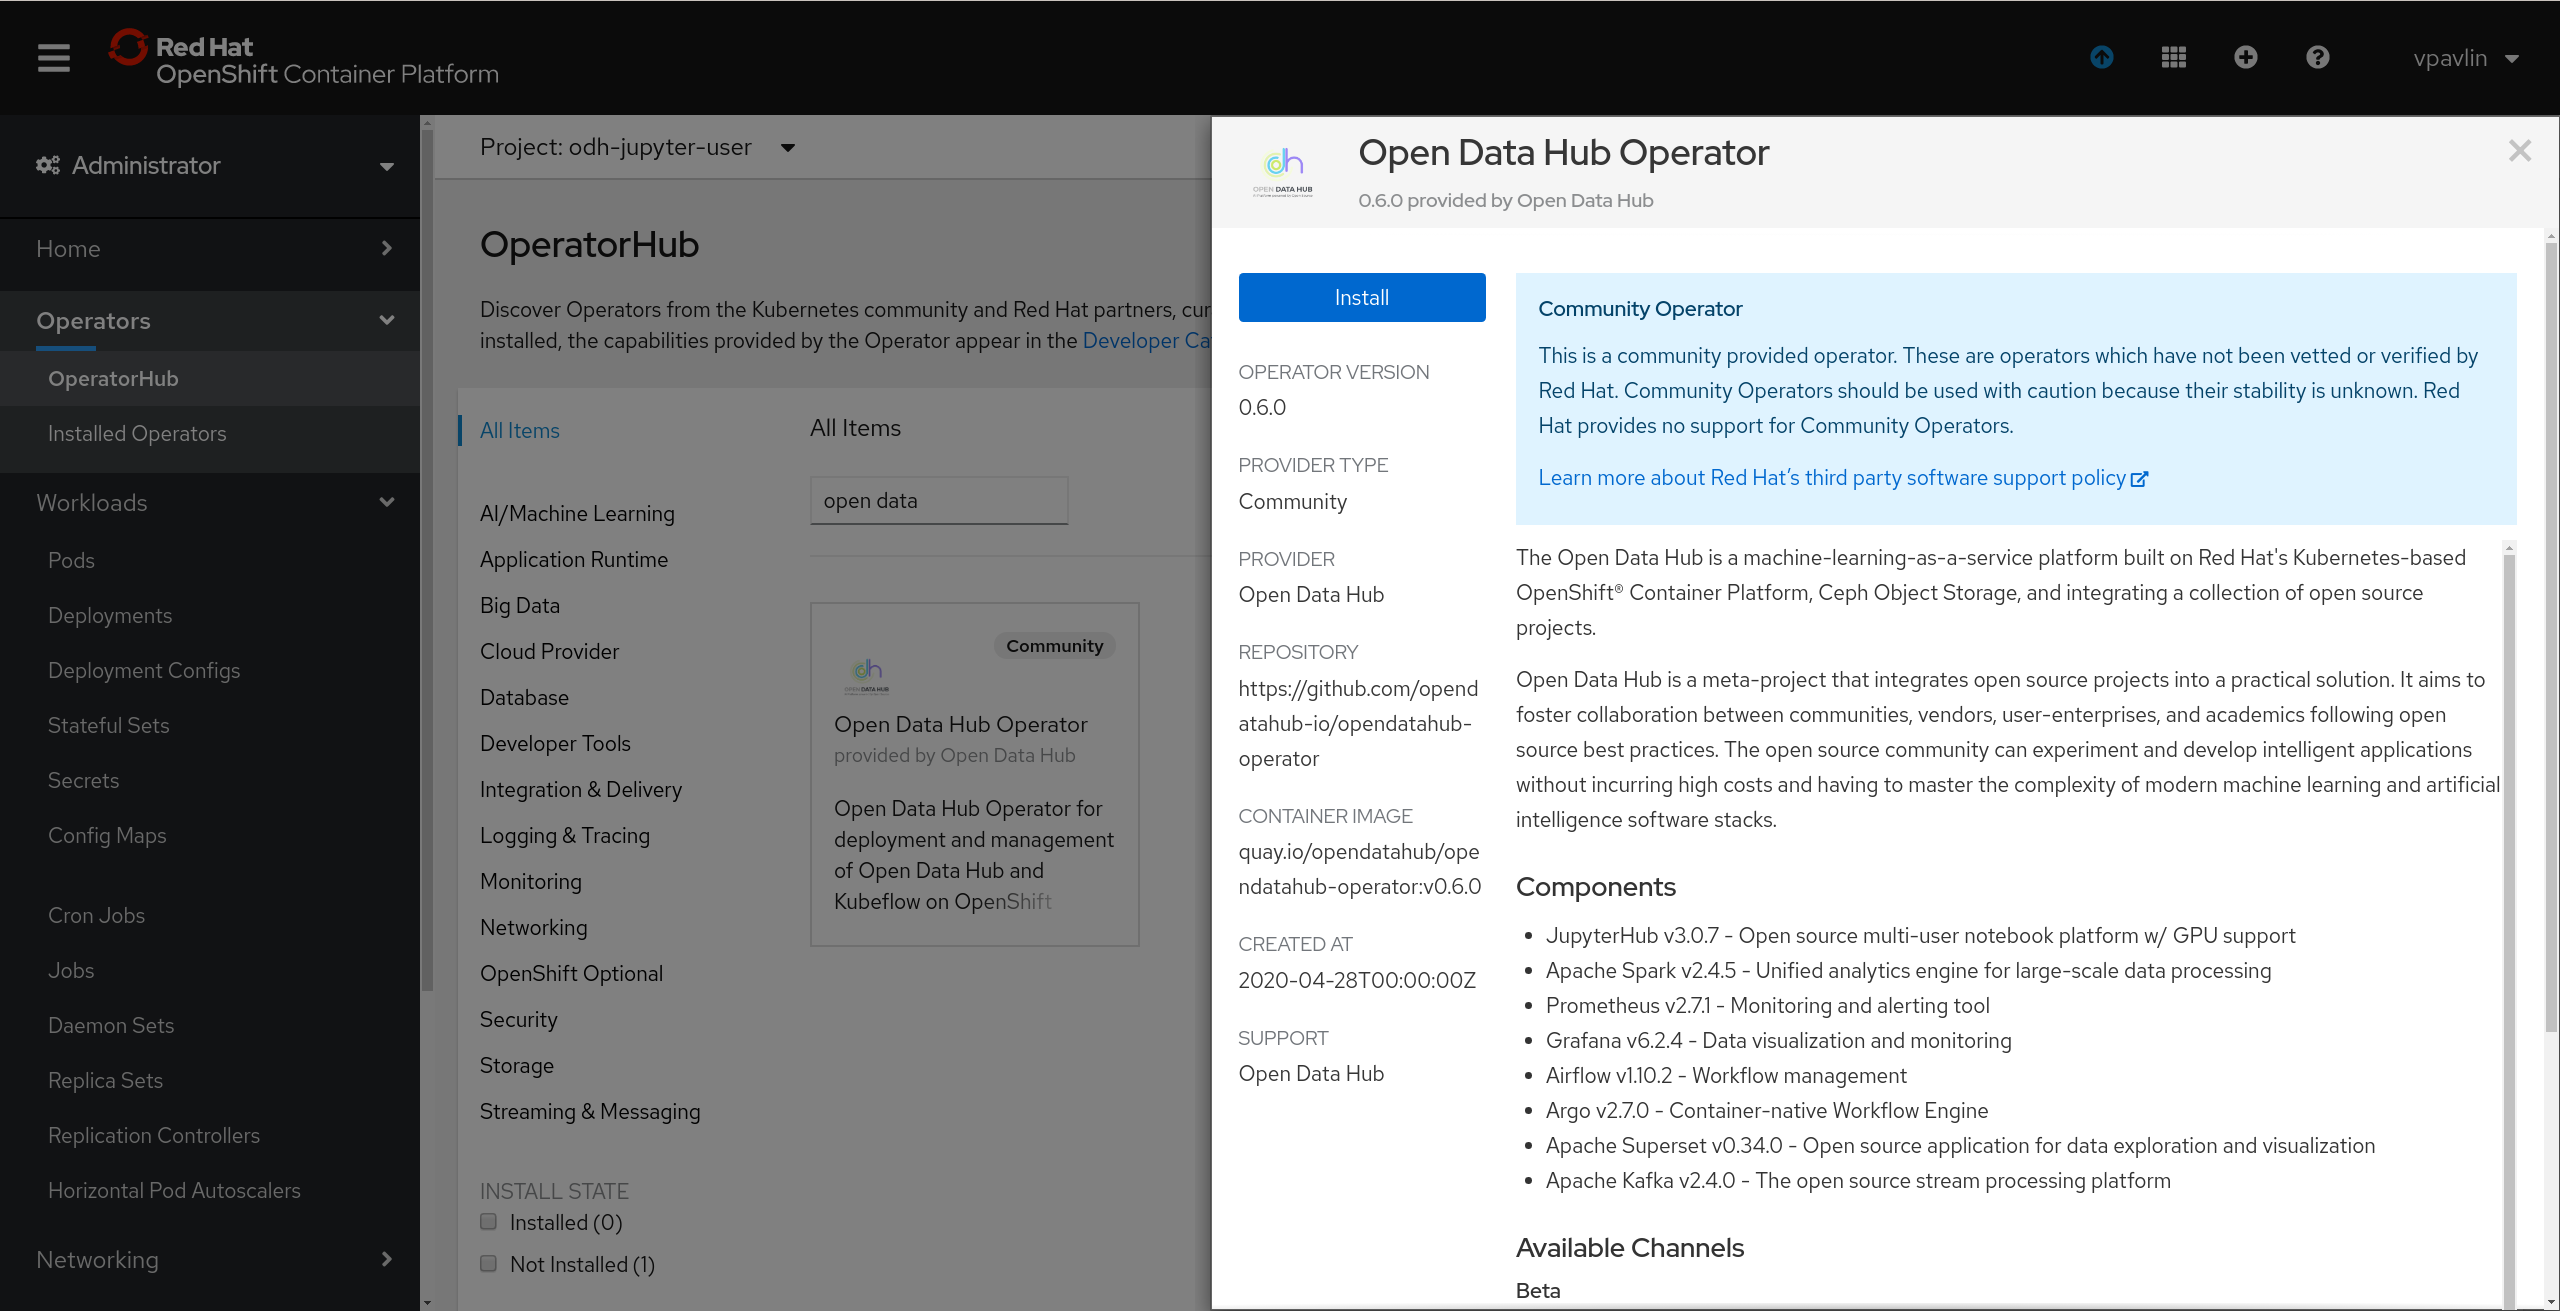 Open Data Hub 0.6 brings component updates and Kubeflow architecture